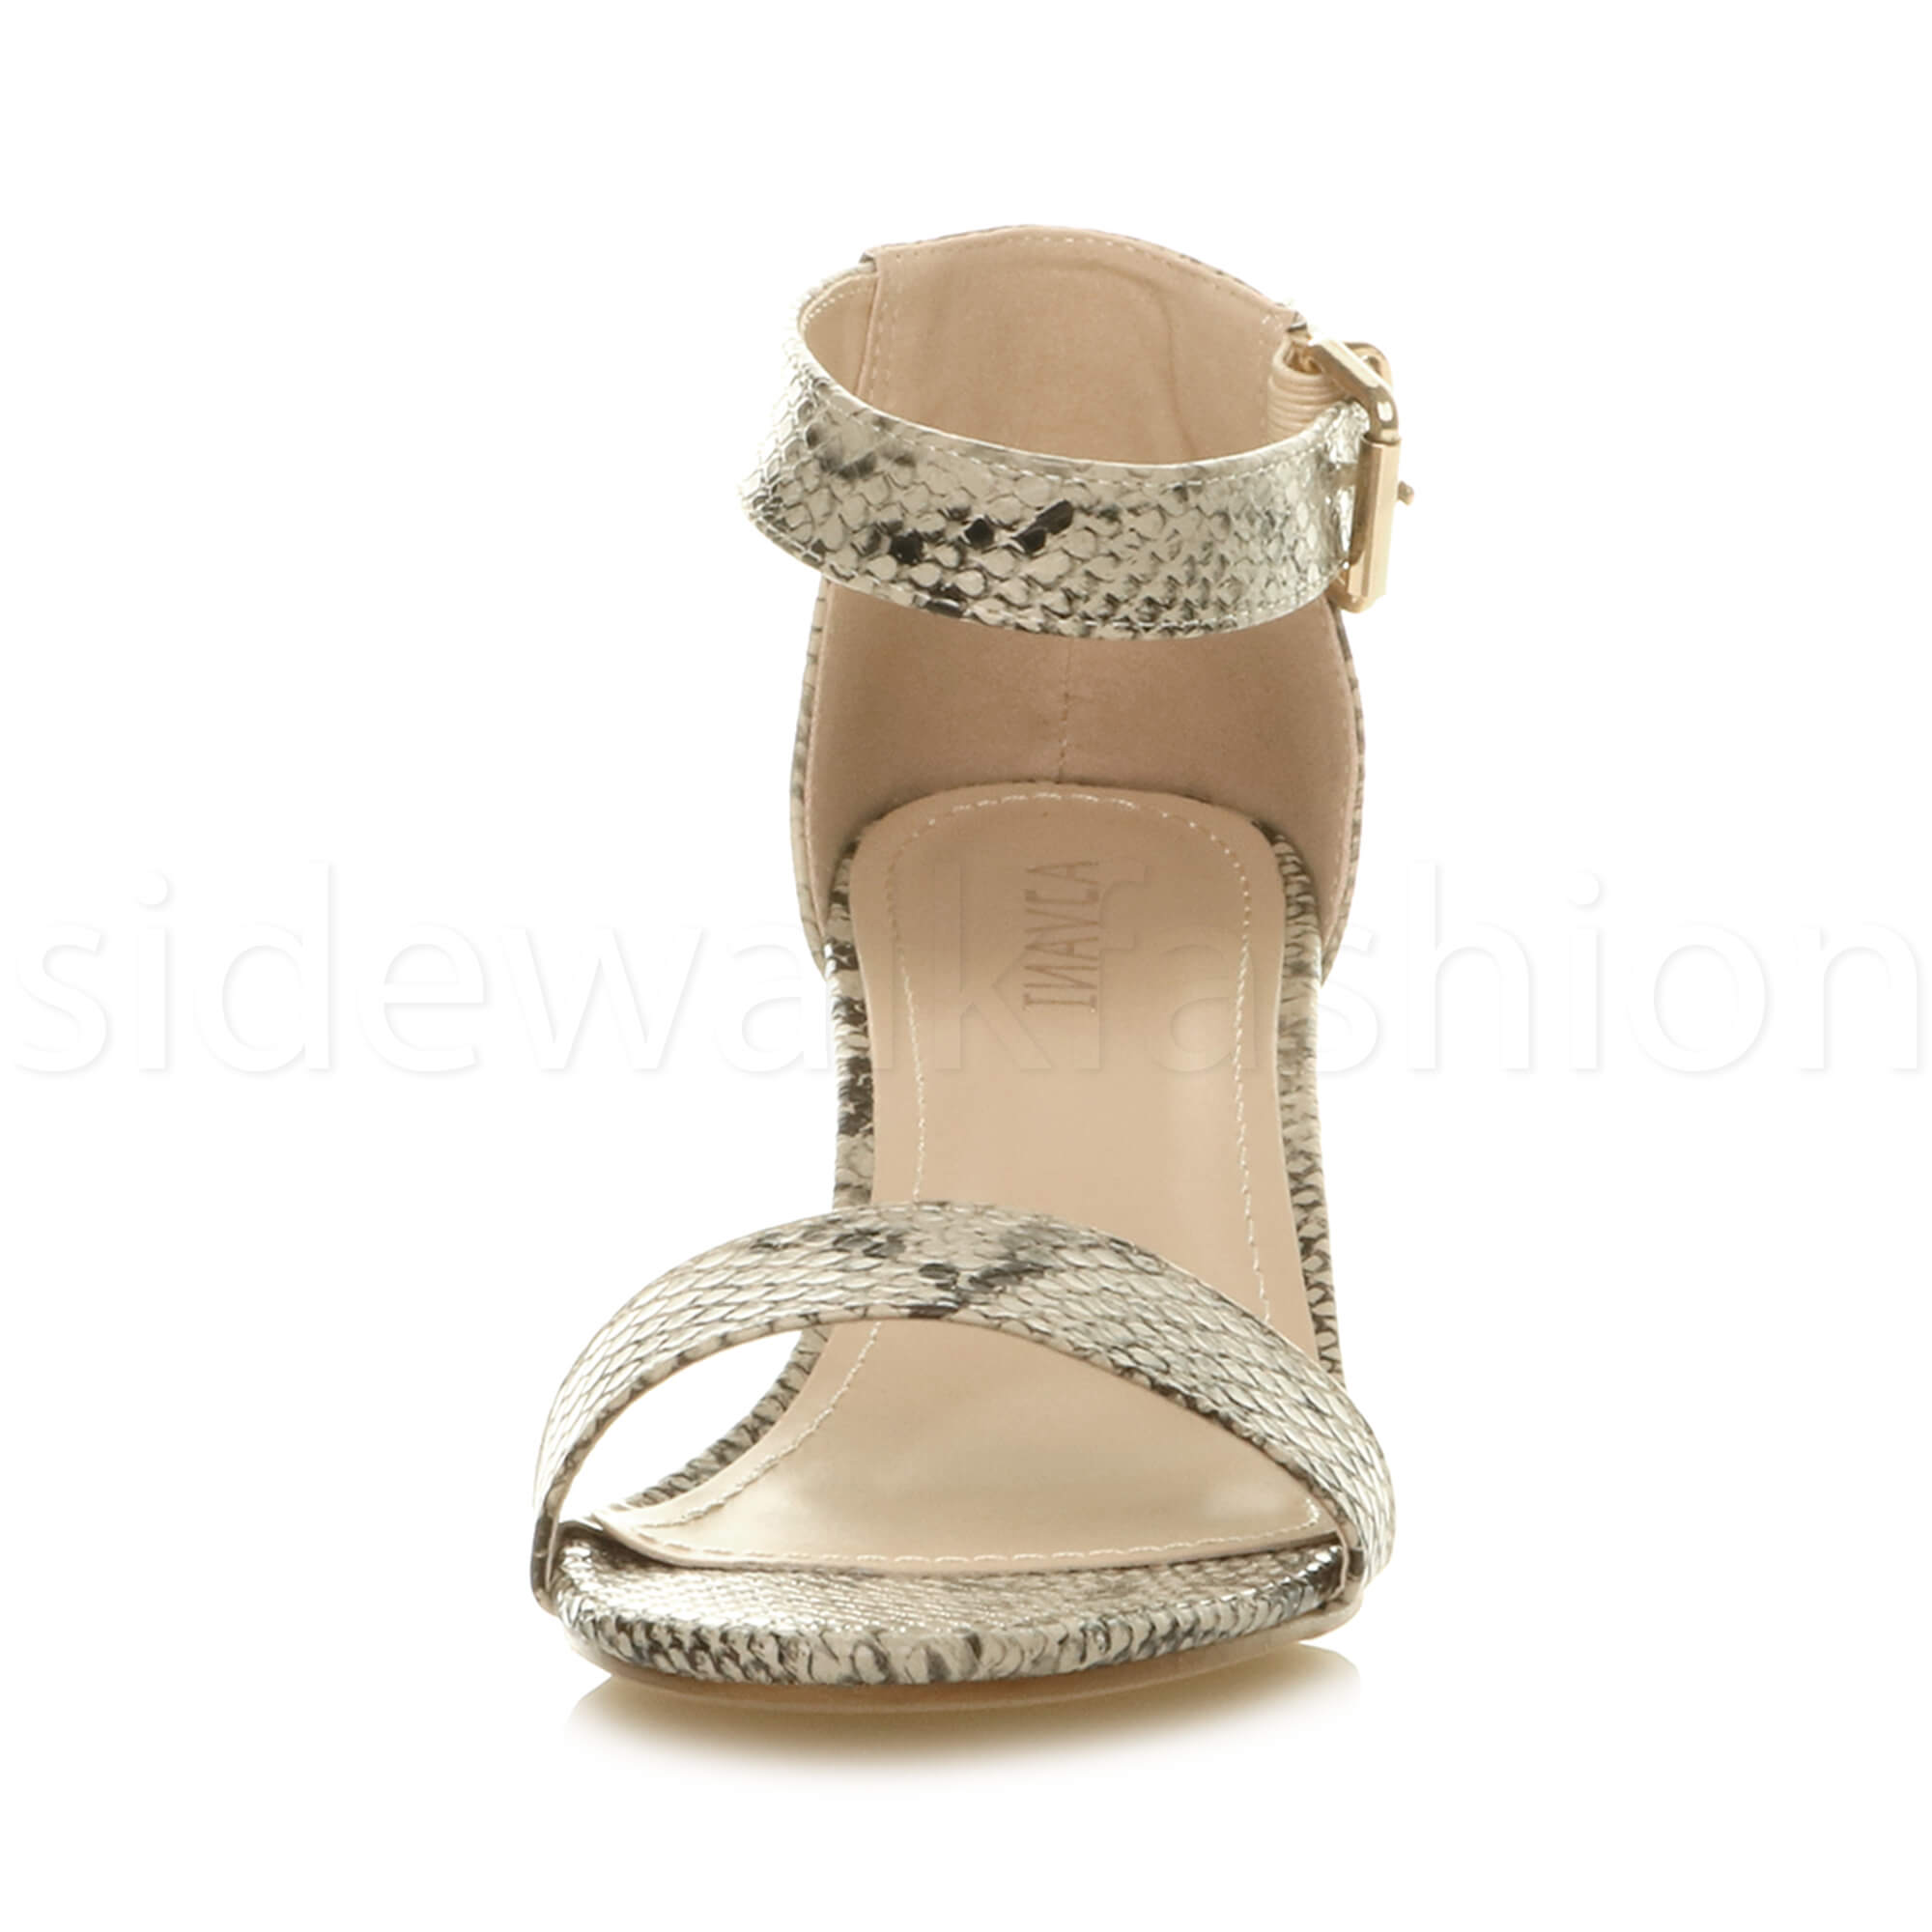 Womens-ladies-low-mid-heel-buckle-ankle-strap-peep-toe-party-strappy-sandal-size thumbnail 13